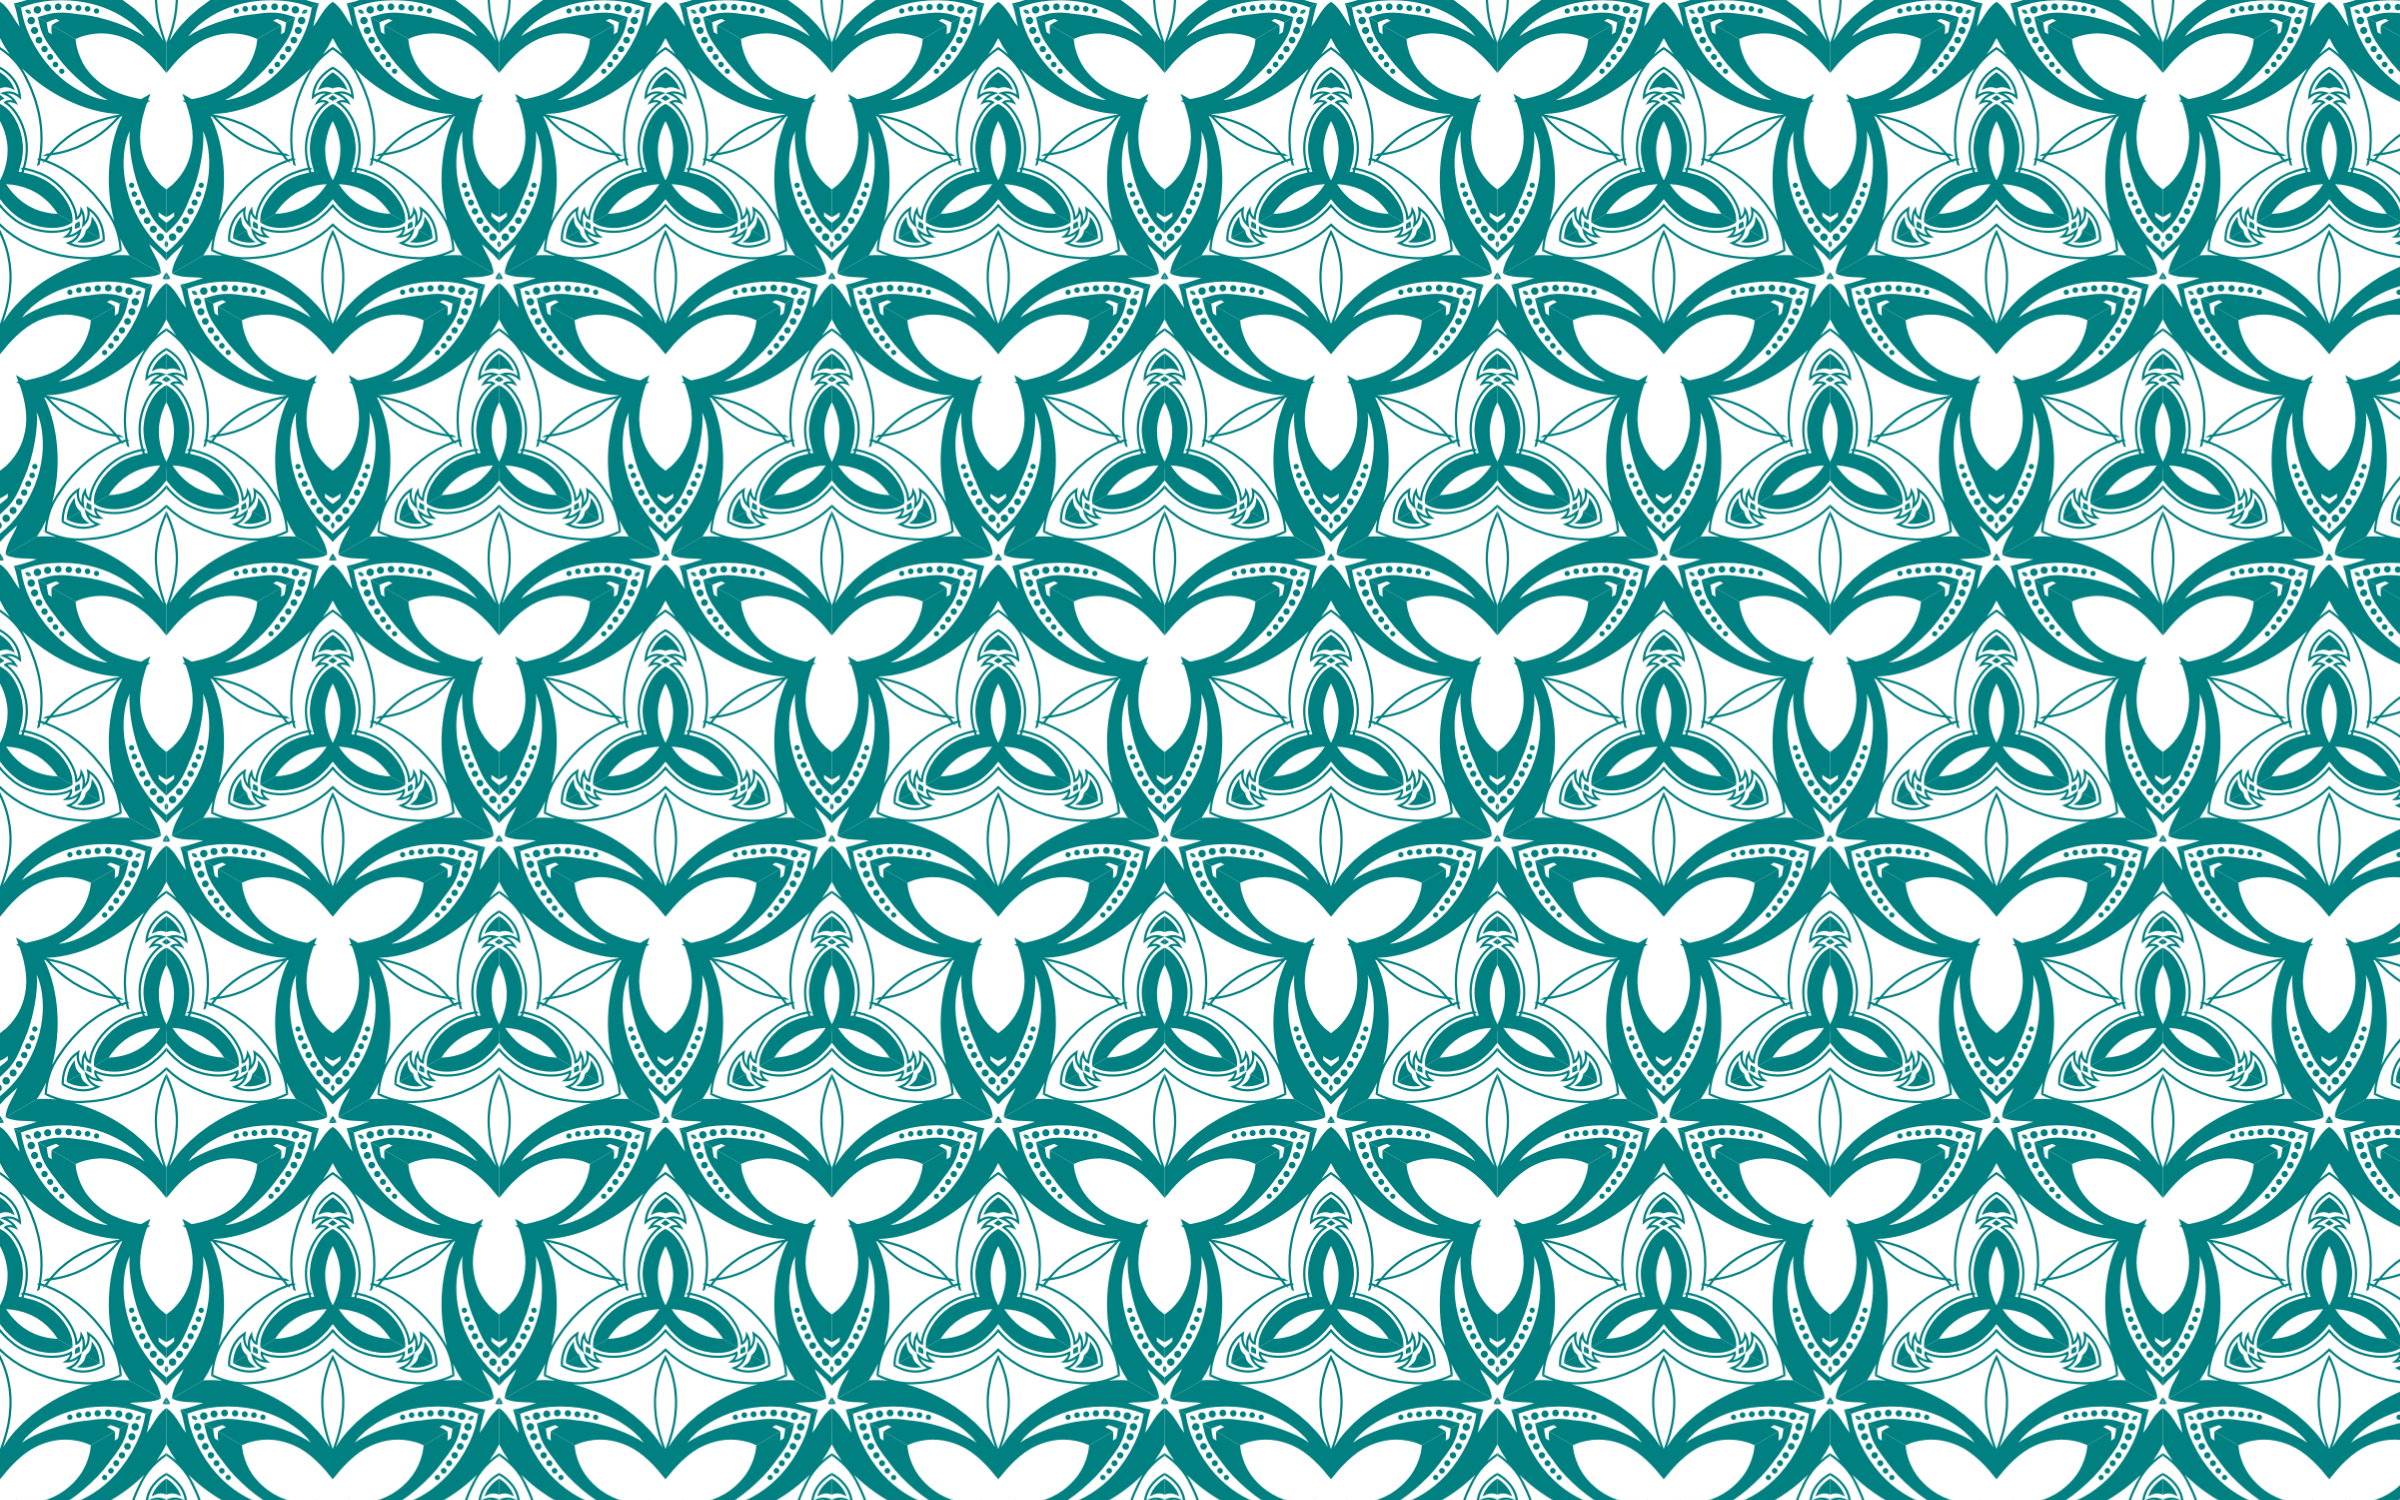 Seamless Pattern 148 by GDJ